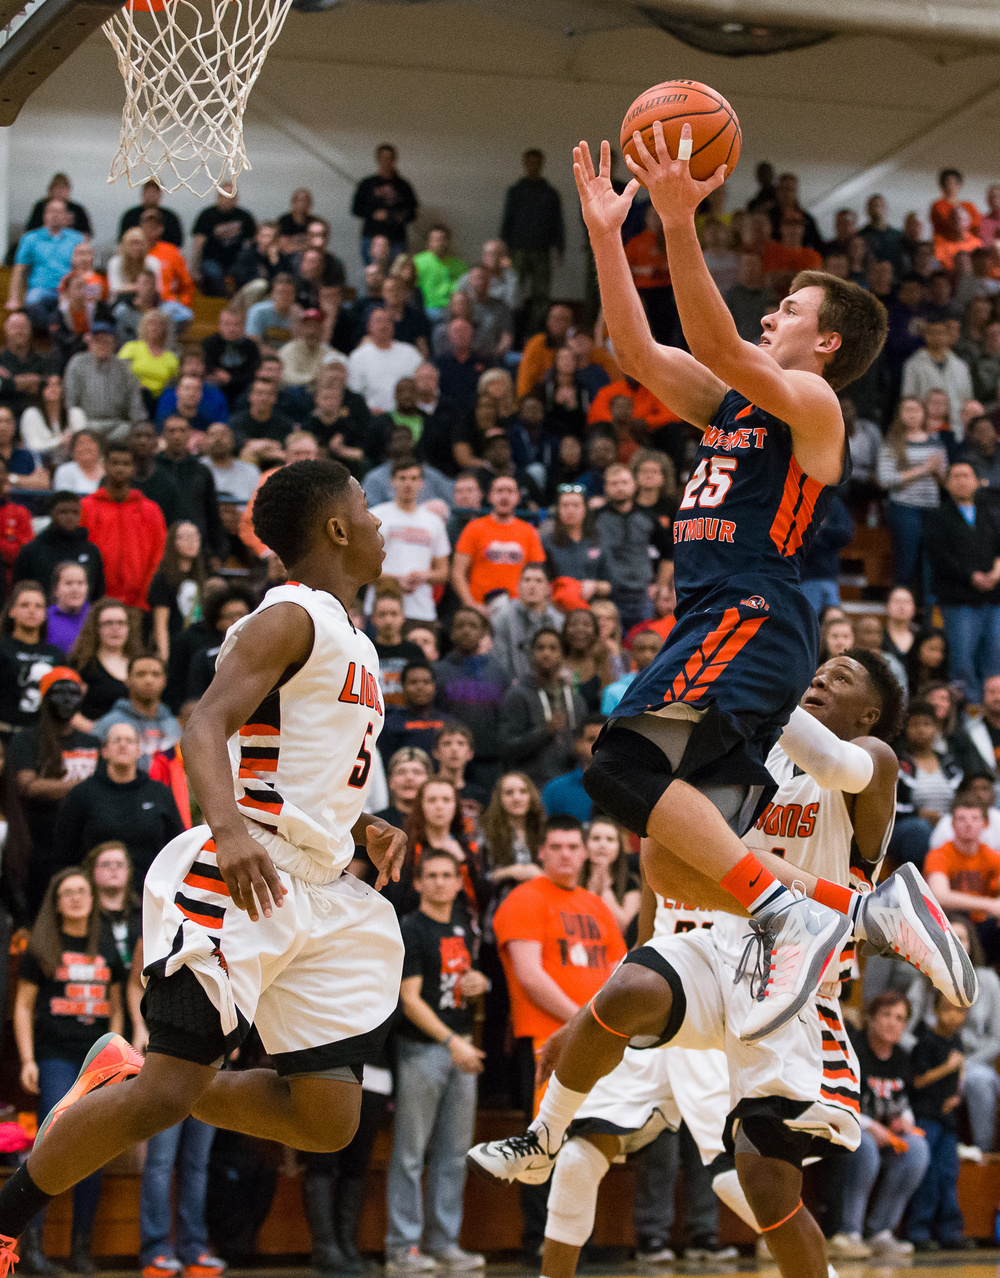 Mahomet-Seymour's Conner Diedrich (25) goes up for a basket in front of Lanphier's Xavier Bishop (5) and Yaakema Rose (1) in the first half during the Class 3A Champaign Centennial Sectional title game, Friday, March 13, 2015, in Champaign, Ill. Justin L. Fowler/The State Journal-Register